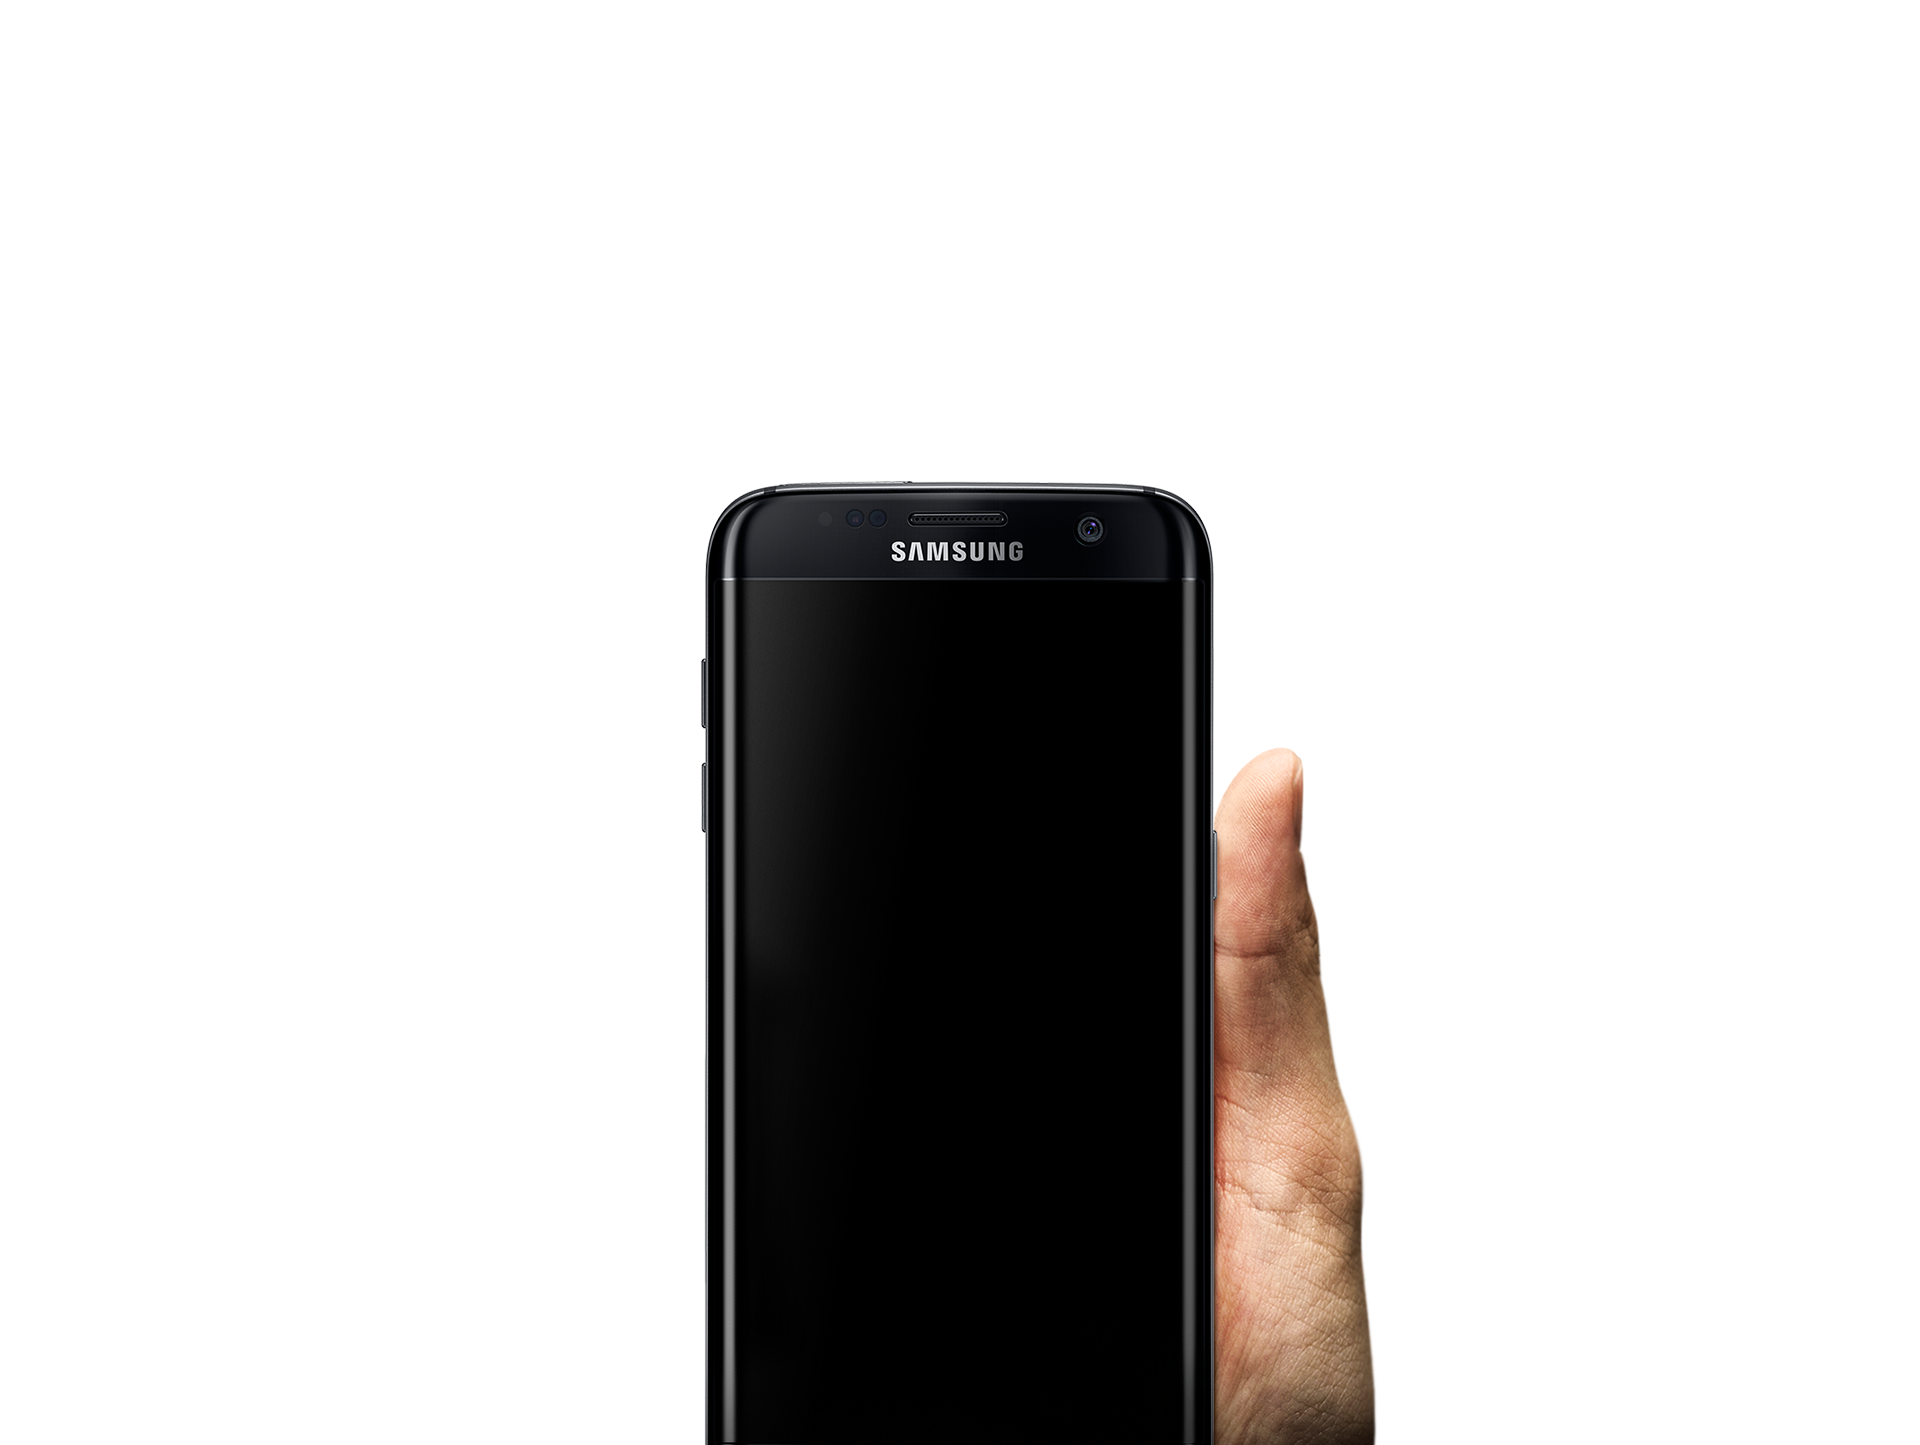 Hand holding up galaxy s7 edge against high contrast background image.